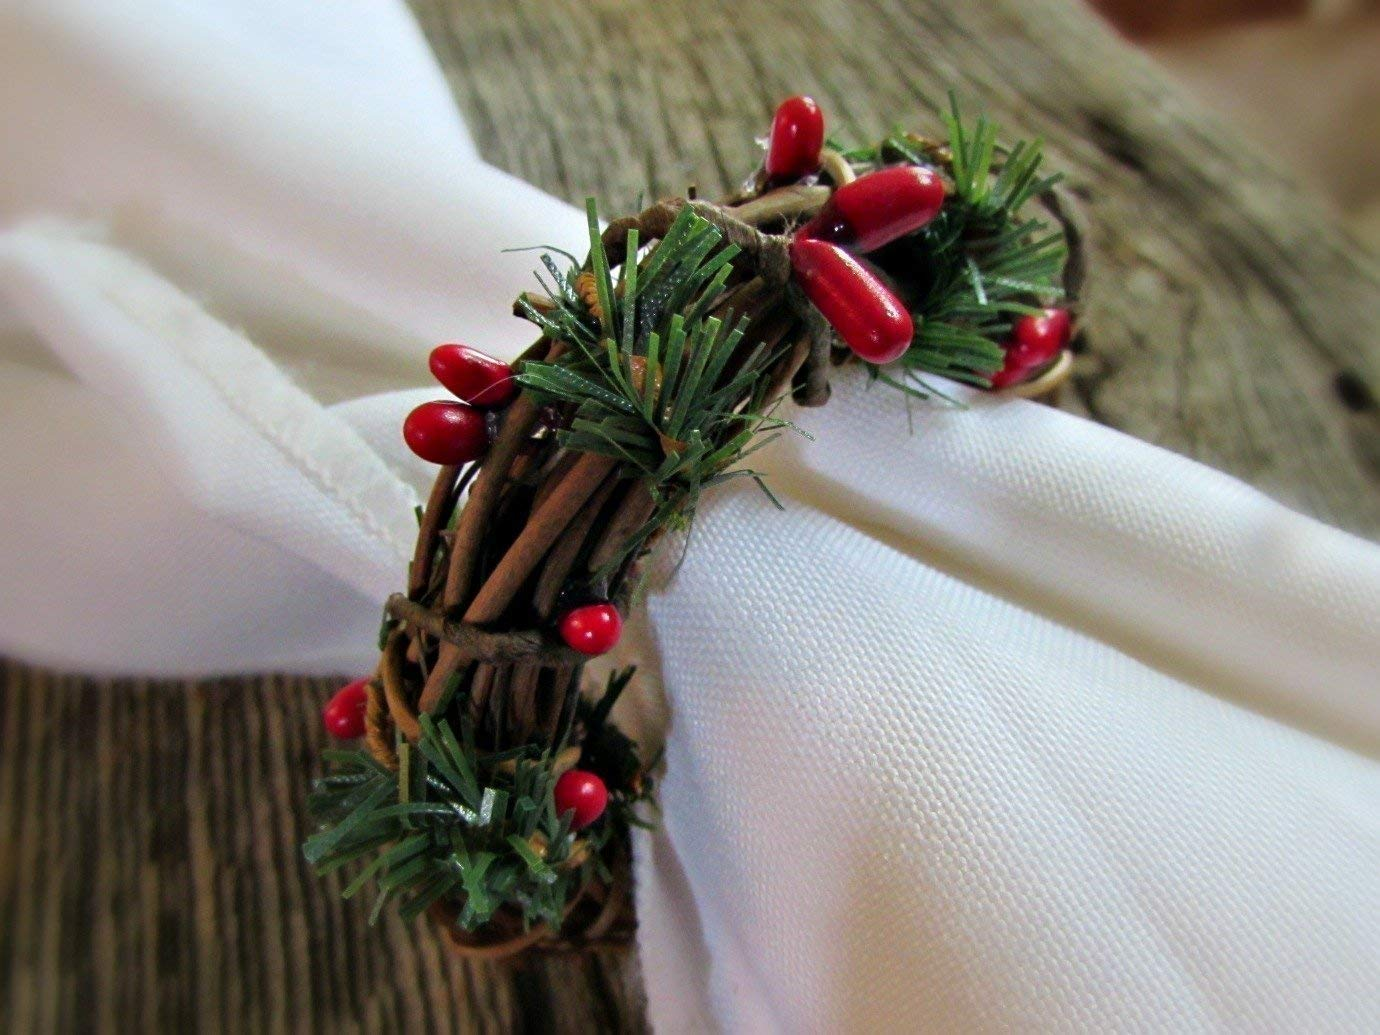 Grapevine Twig Napkin Ring Holders for Christmas Table Decoration Green Pine Set of 4, 6, 8, 10, 12 Red Berry